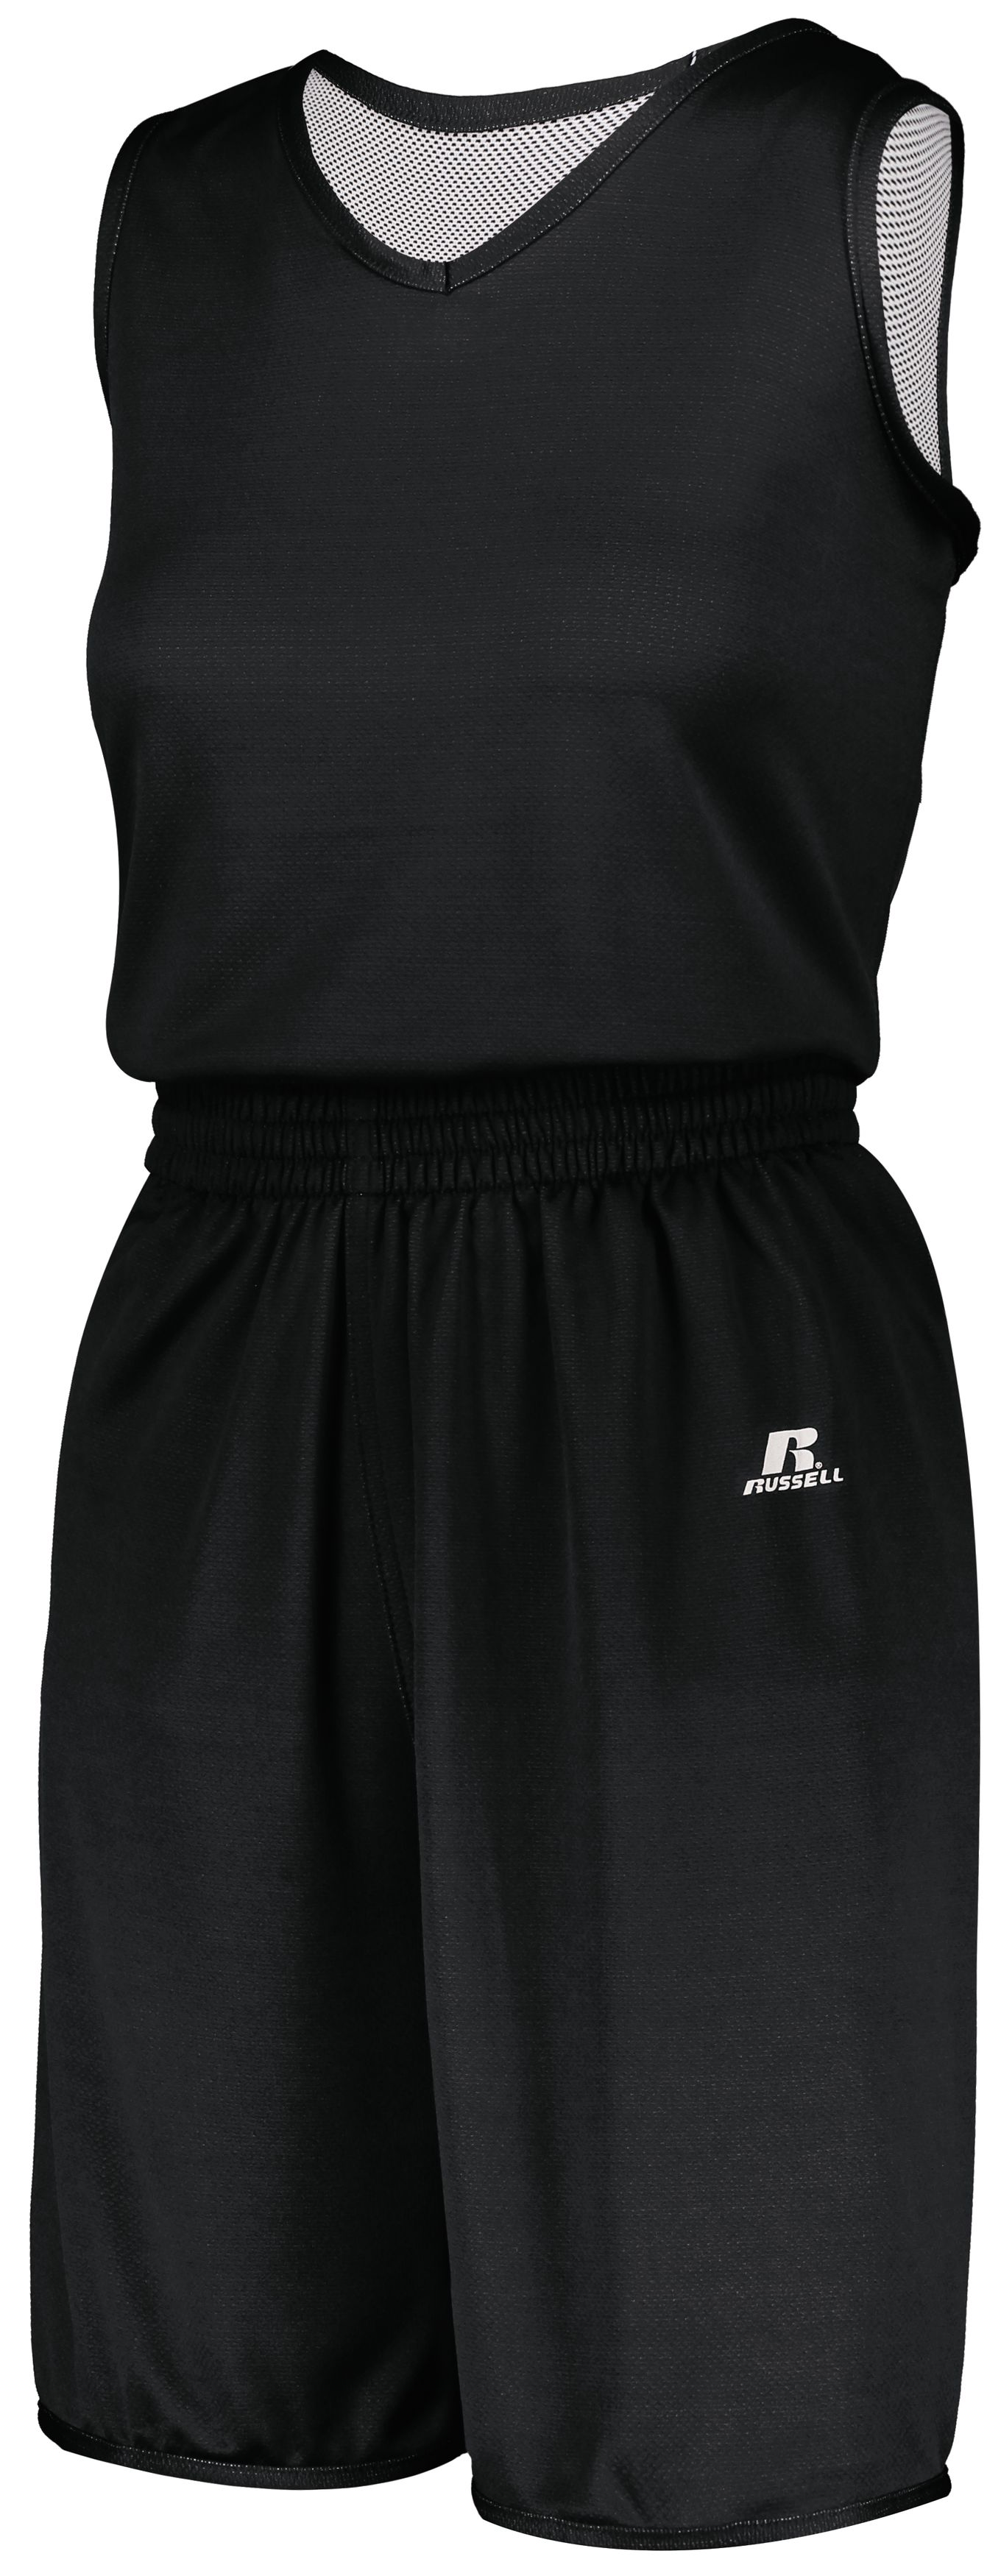 Ladies Undivided Solid Single Ply Reversible Shorts - BLACK/WHITE